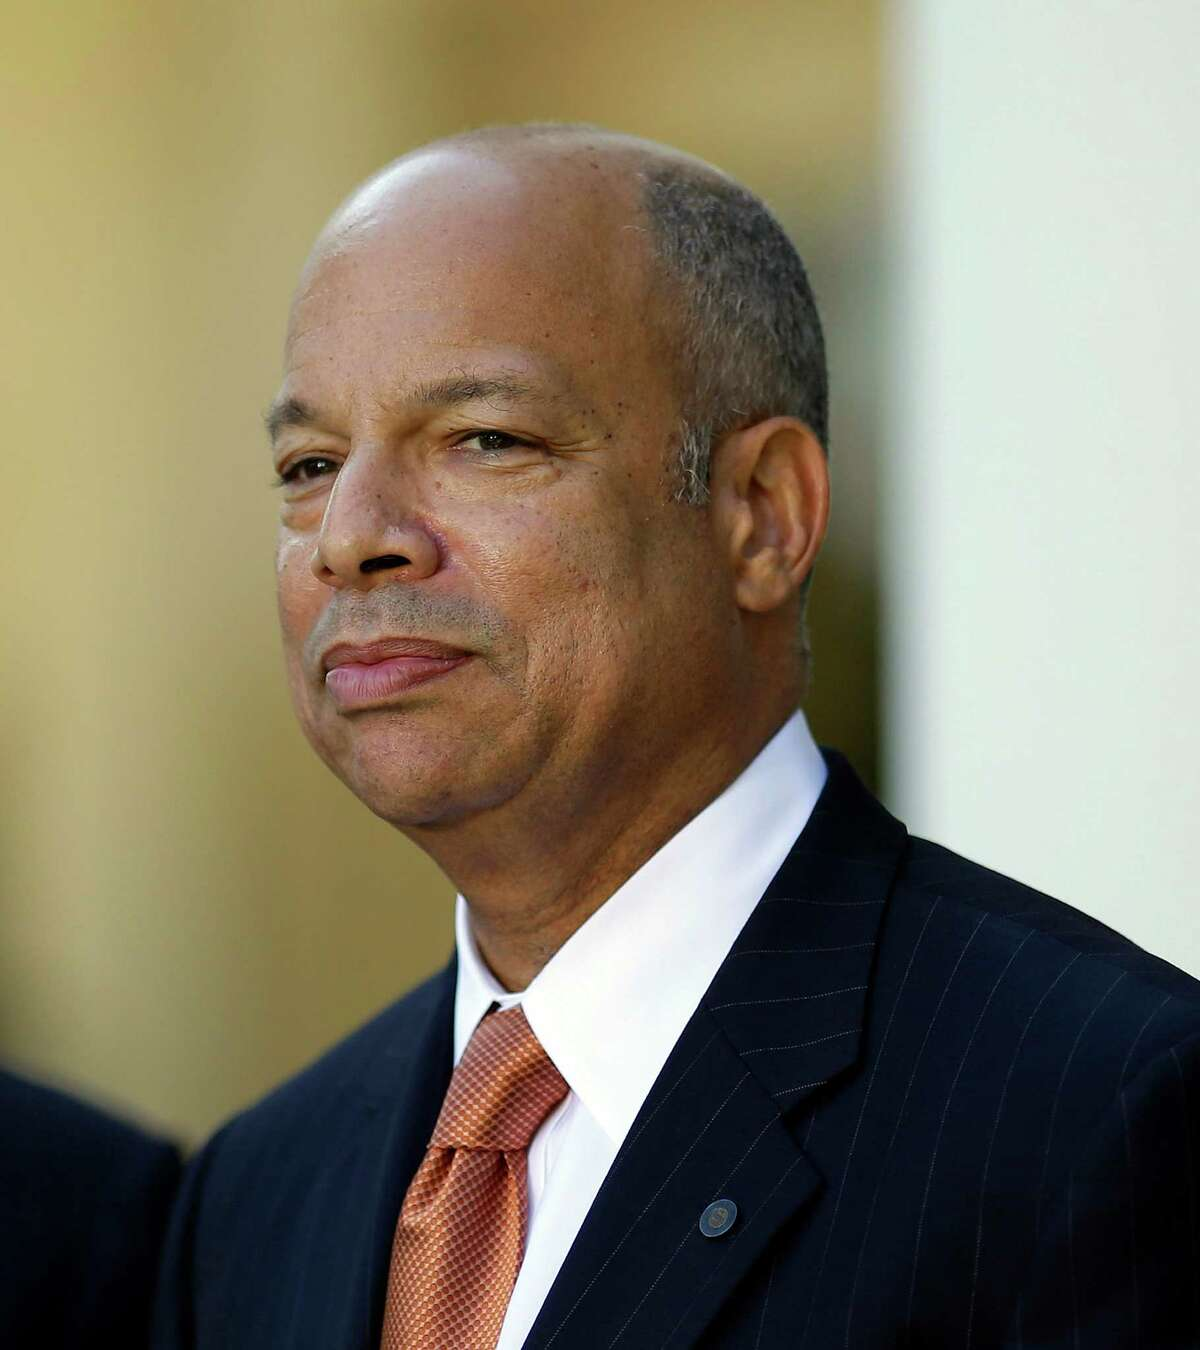 Jeh Johnson, President Barack Obama's choice for the next Homeland Security Secretary, watches in the Rose Garden at the White House in Washington, Friday, Oct. 18, 2013. Johnson was general counsel at the Defense Department during the wars in Iraq and Afghanistan.(AP Photo/Pablo Martinez Monsivais) Johnson as a special advisor to New York's chief judge put out a scathing report in October 2020 on the whiteness of judges in upstate New York. ORG XMIT: DCPM104